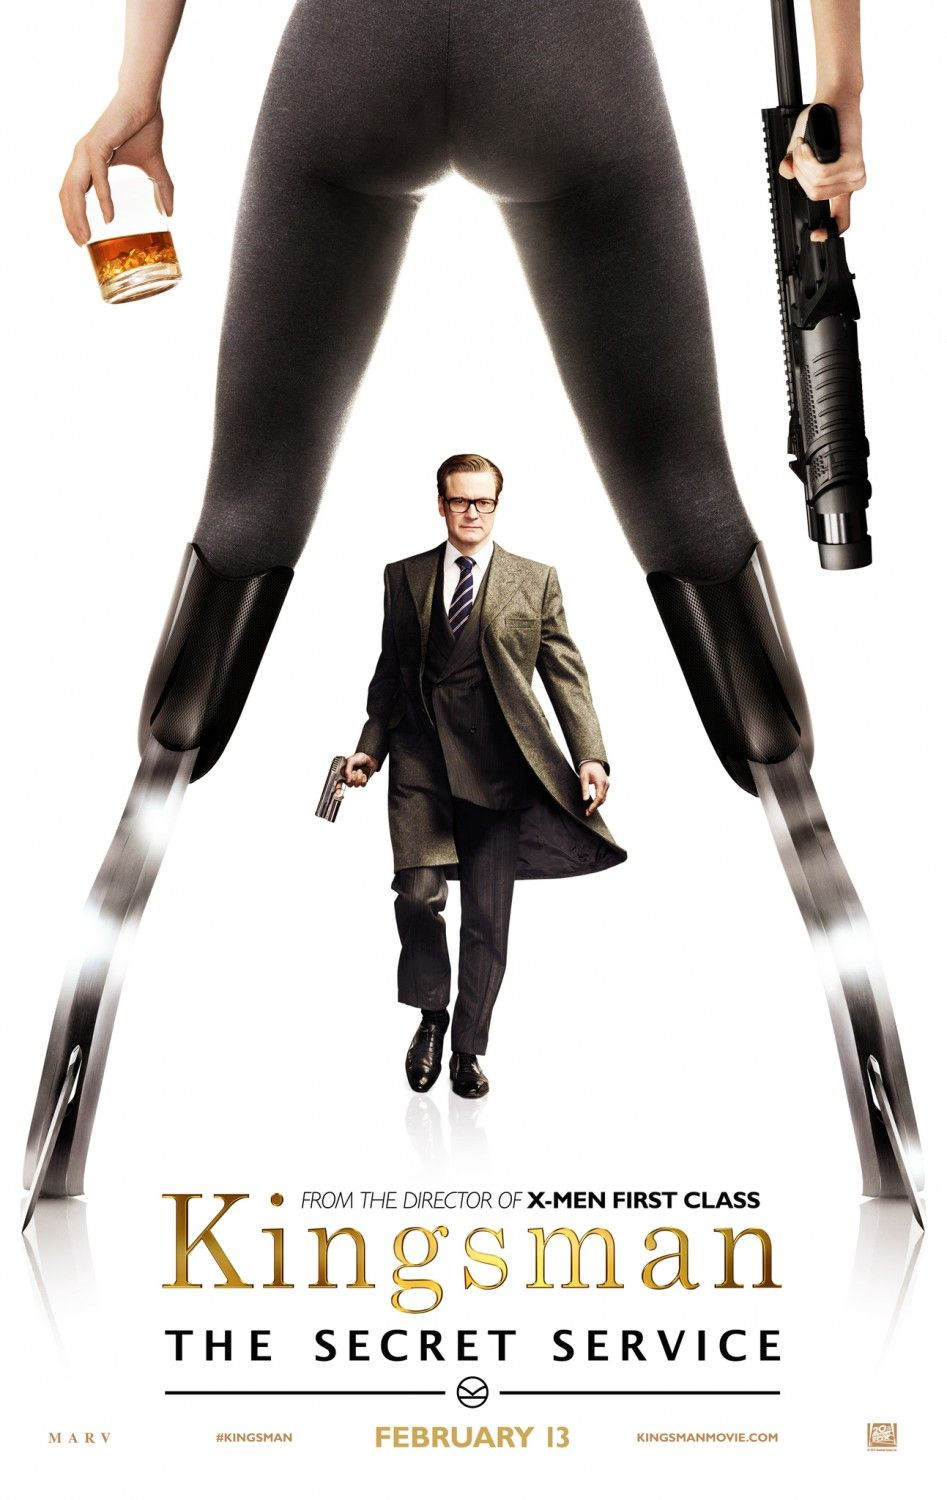 KINGSMAN: The Secret Service | Colin Firth | In theaters February 13, 2015